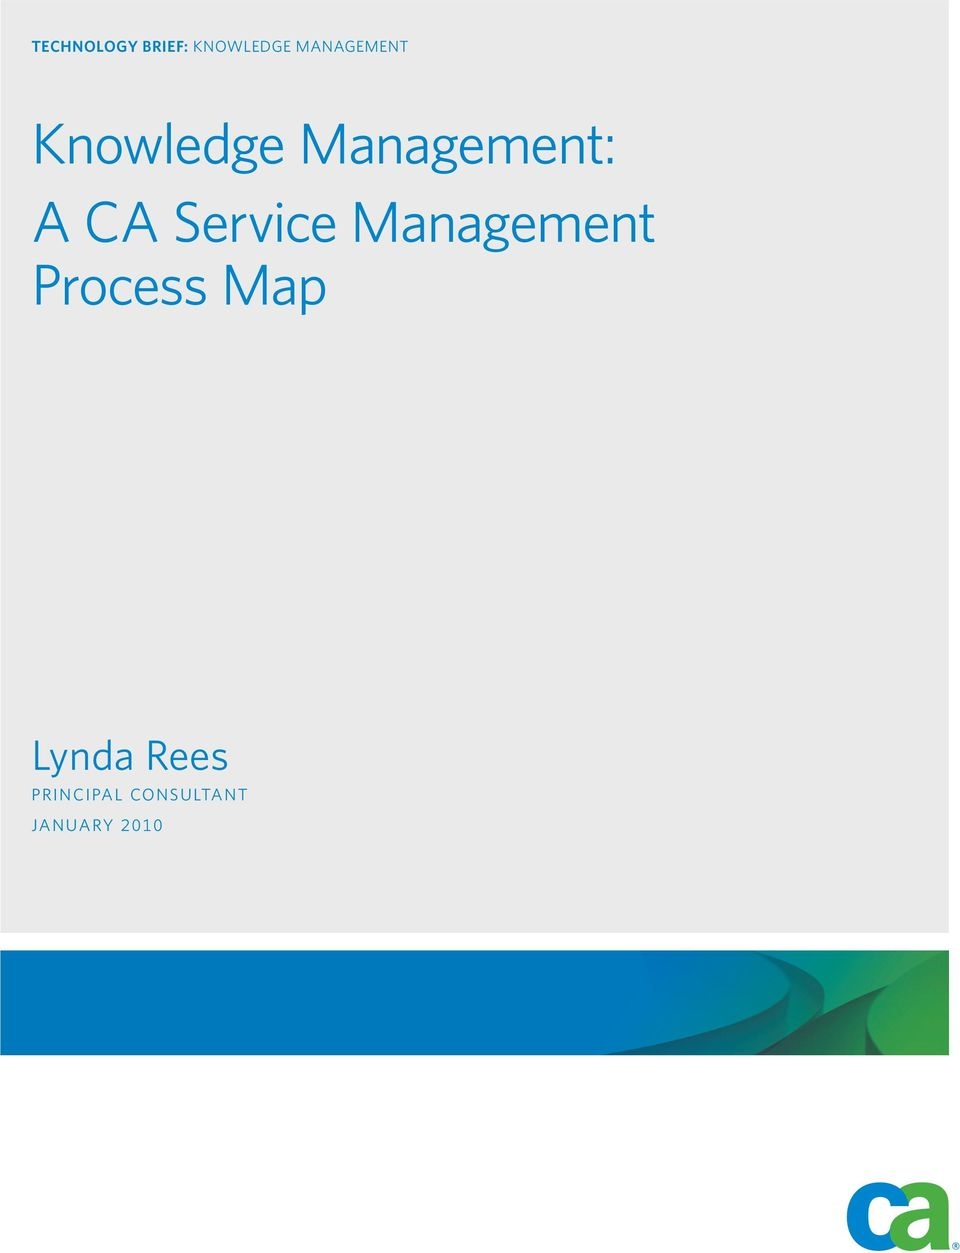 knowledge management a ca service management process map lynda